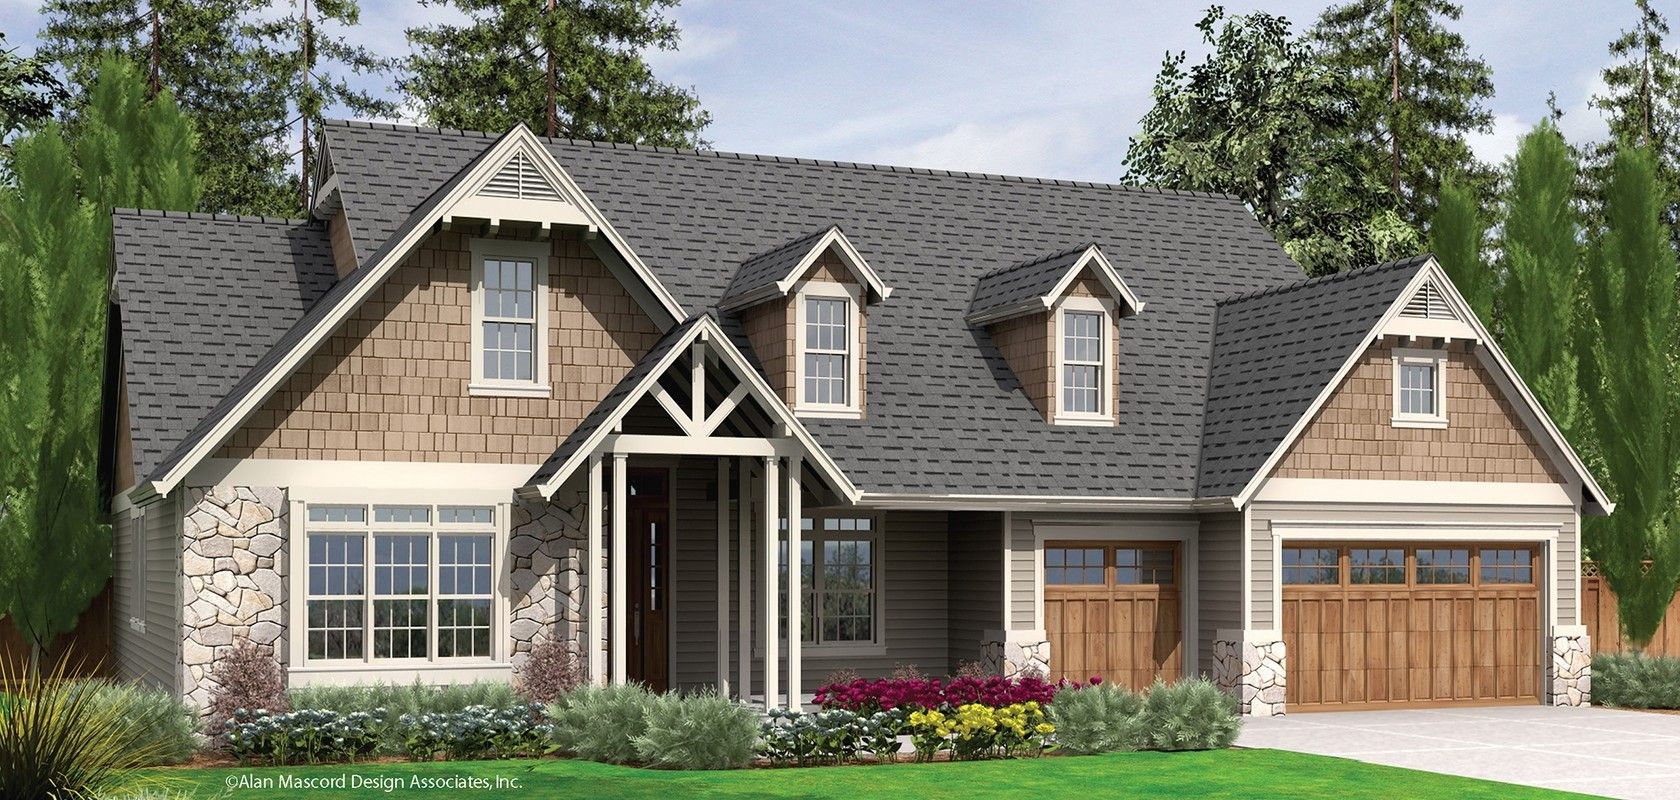 Mascord plan 22157 the alton craftsman house plans House plans mascord